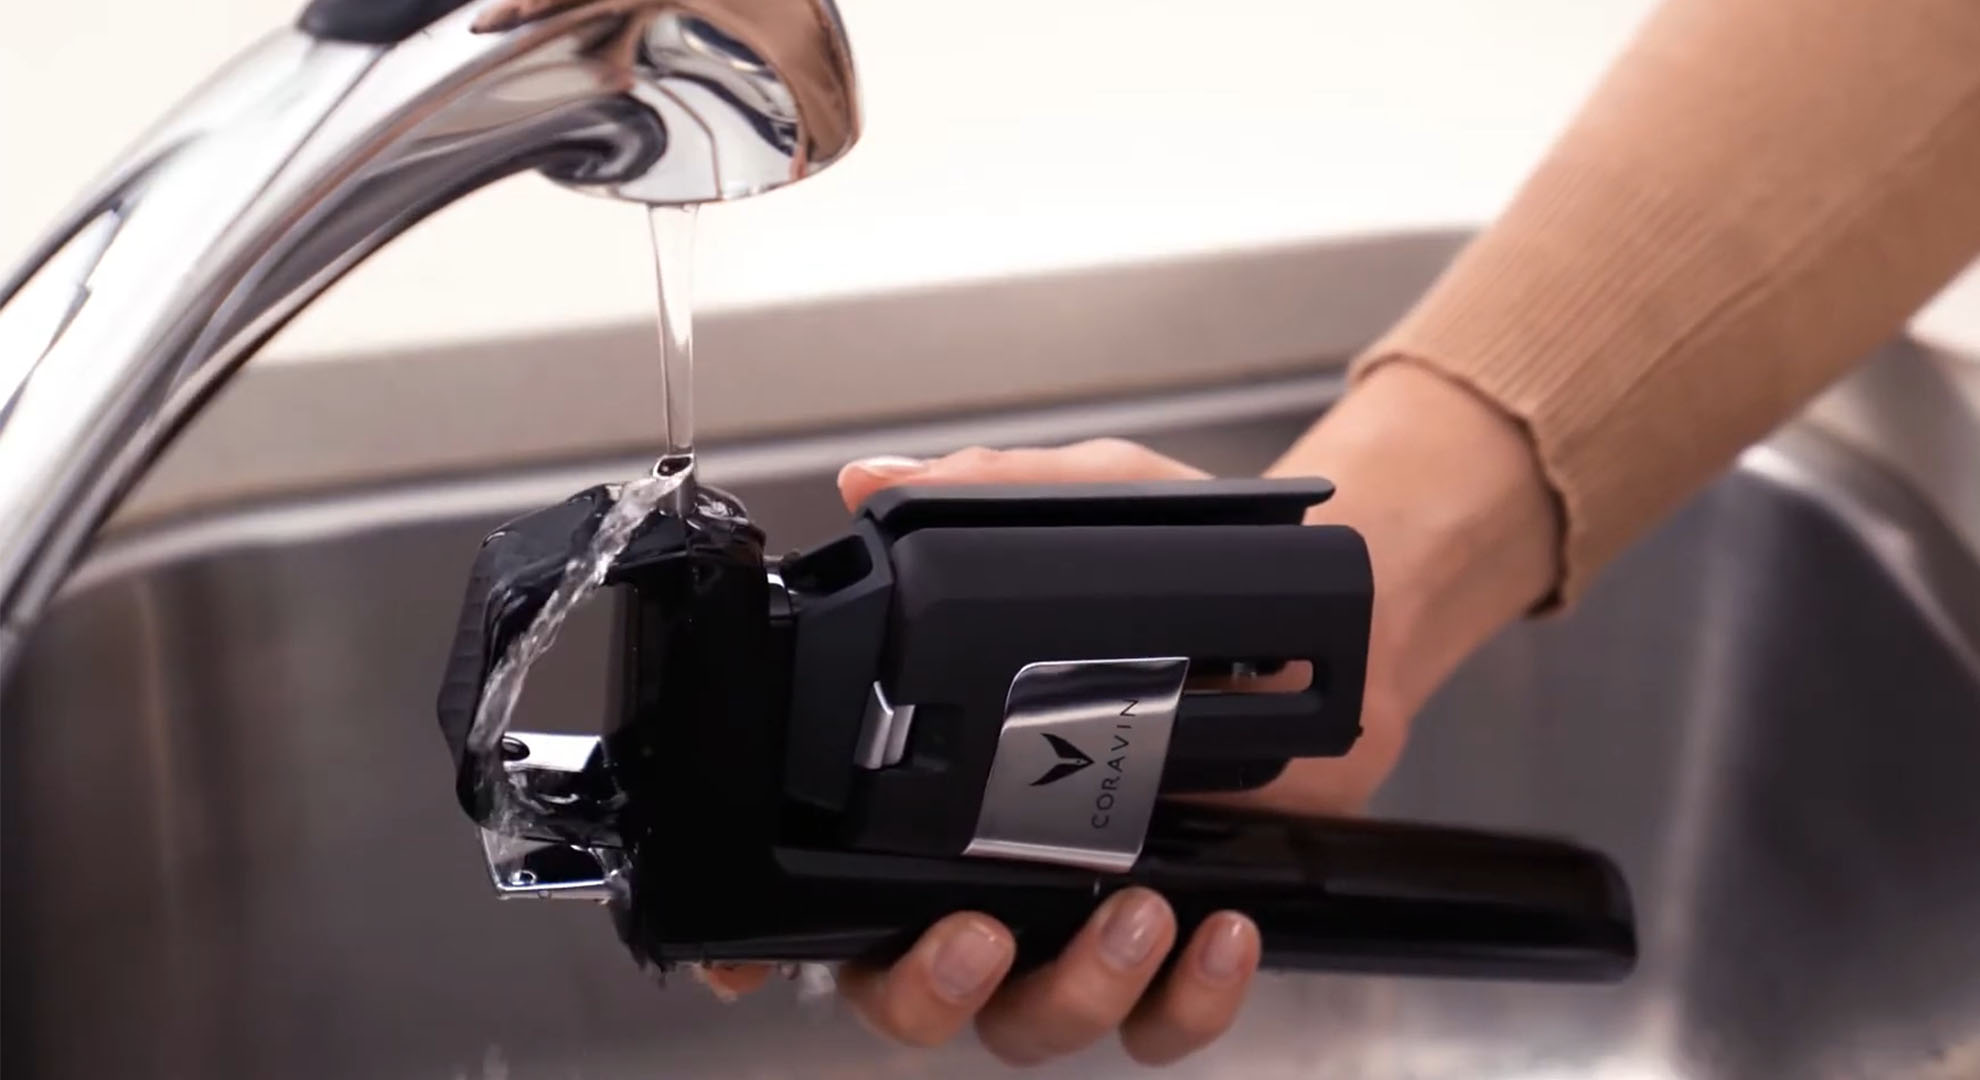 Coravin Model Six Wine Preservation System under a running tap